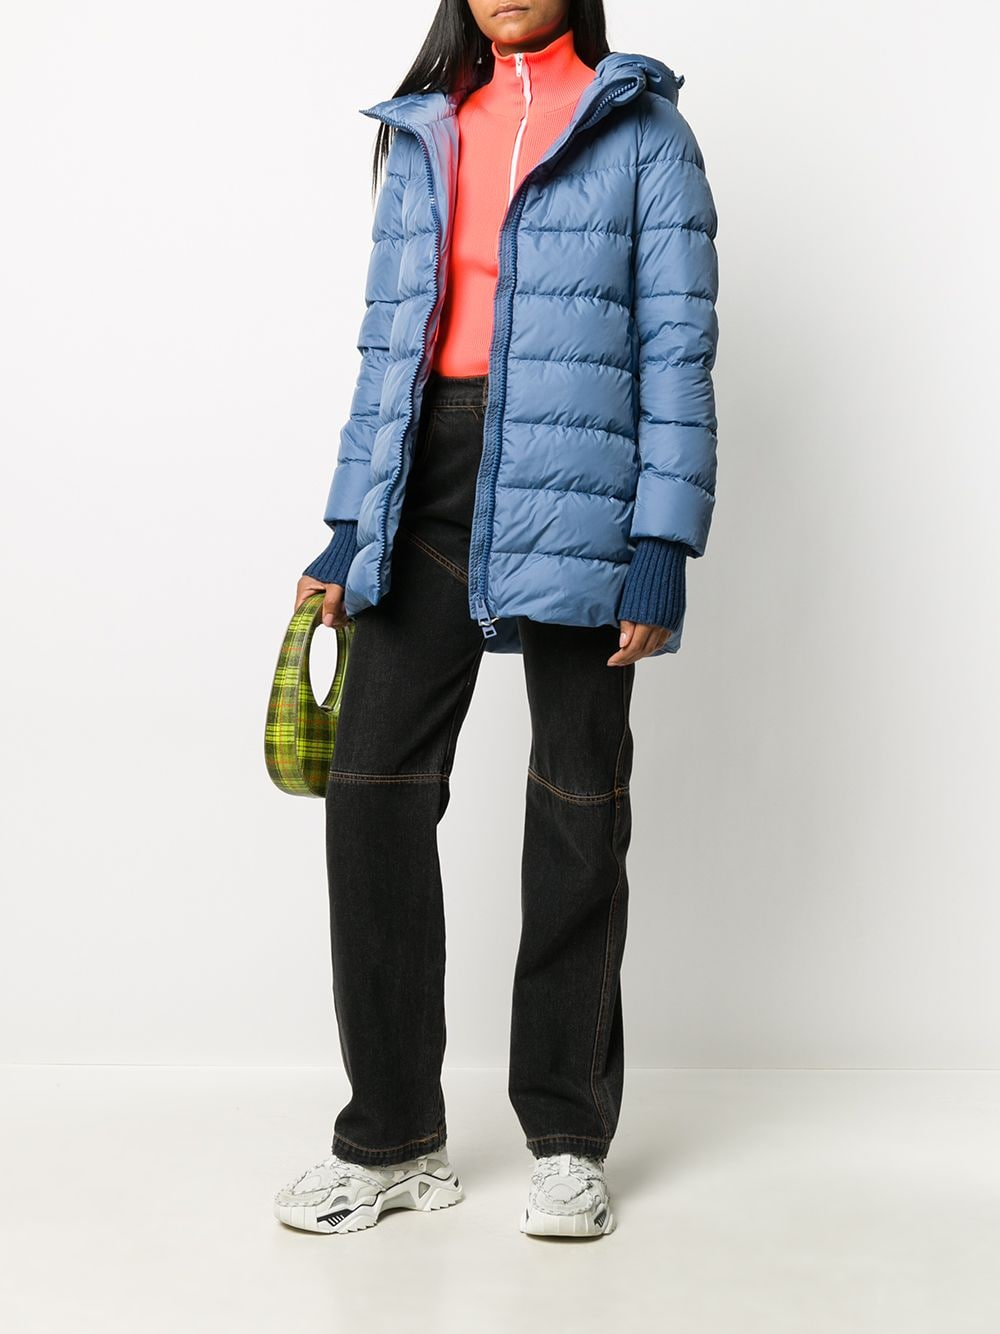 Cornflower blue padded hooded coat featuring high neck HERNO |  | PI0660D-120049075